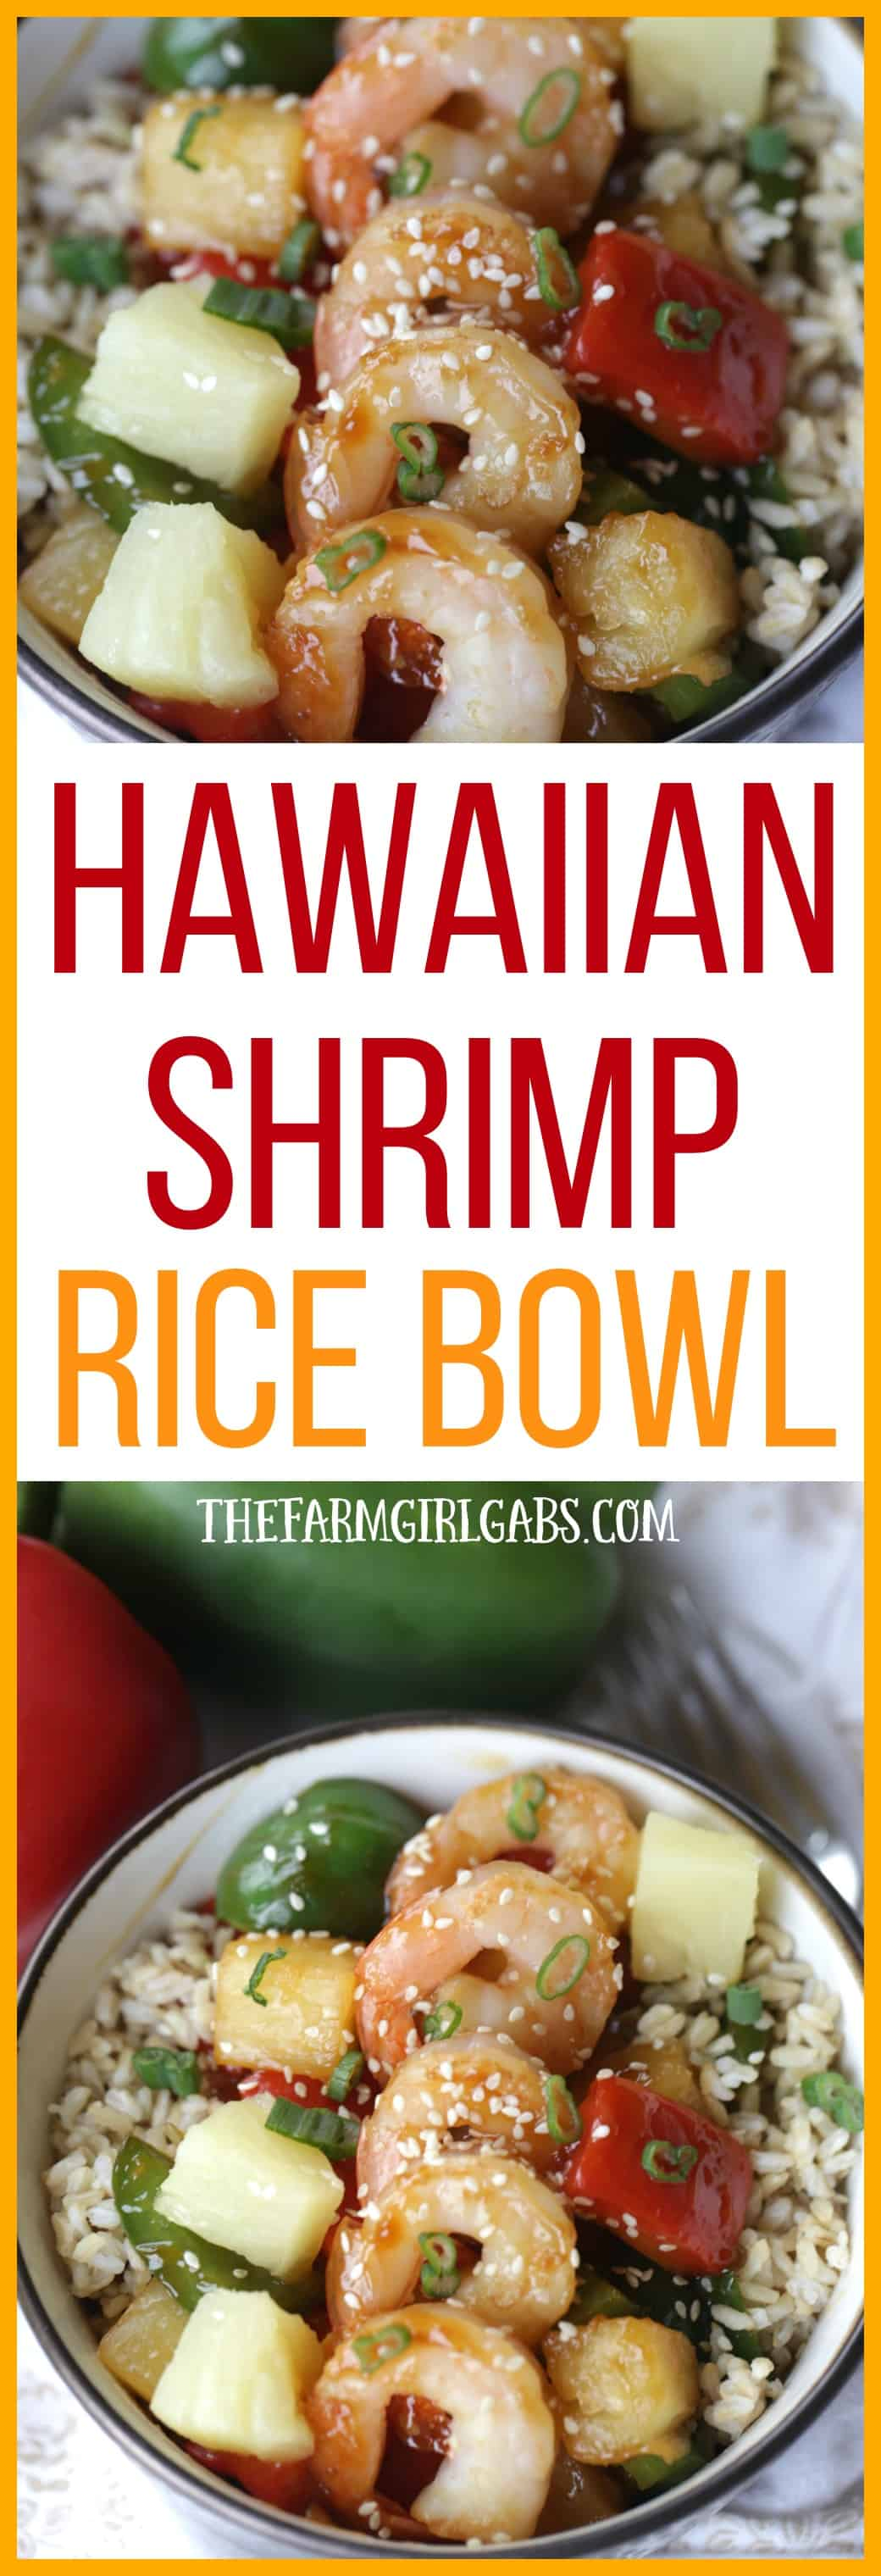 Hawaiian shrimp rice bowl 30 minute meal the farm girl gabs this hawaiian shrimp rice bowl is a flavorful and simple 30 minute meal that is sisterspd